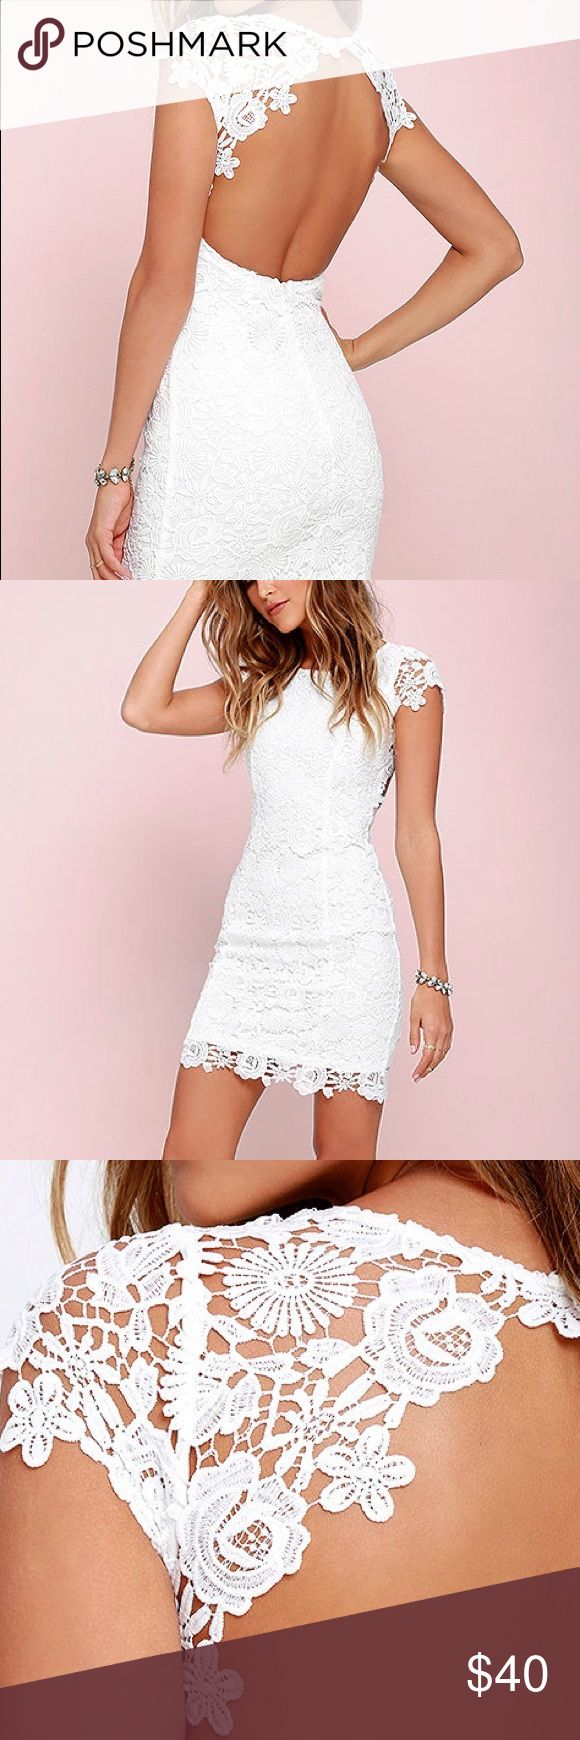 XS White Lulus dress Really cute fitted white lulus dress only worn once! Lulu's Dresses Mini